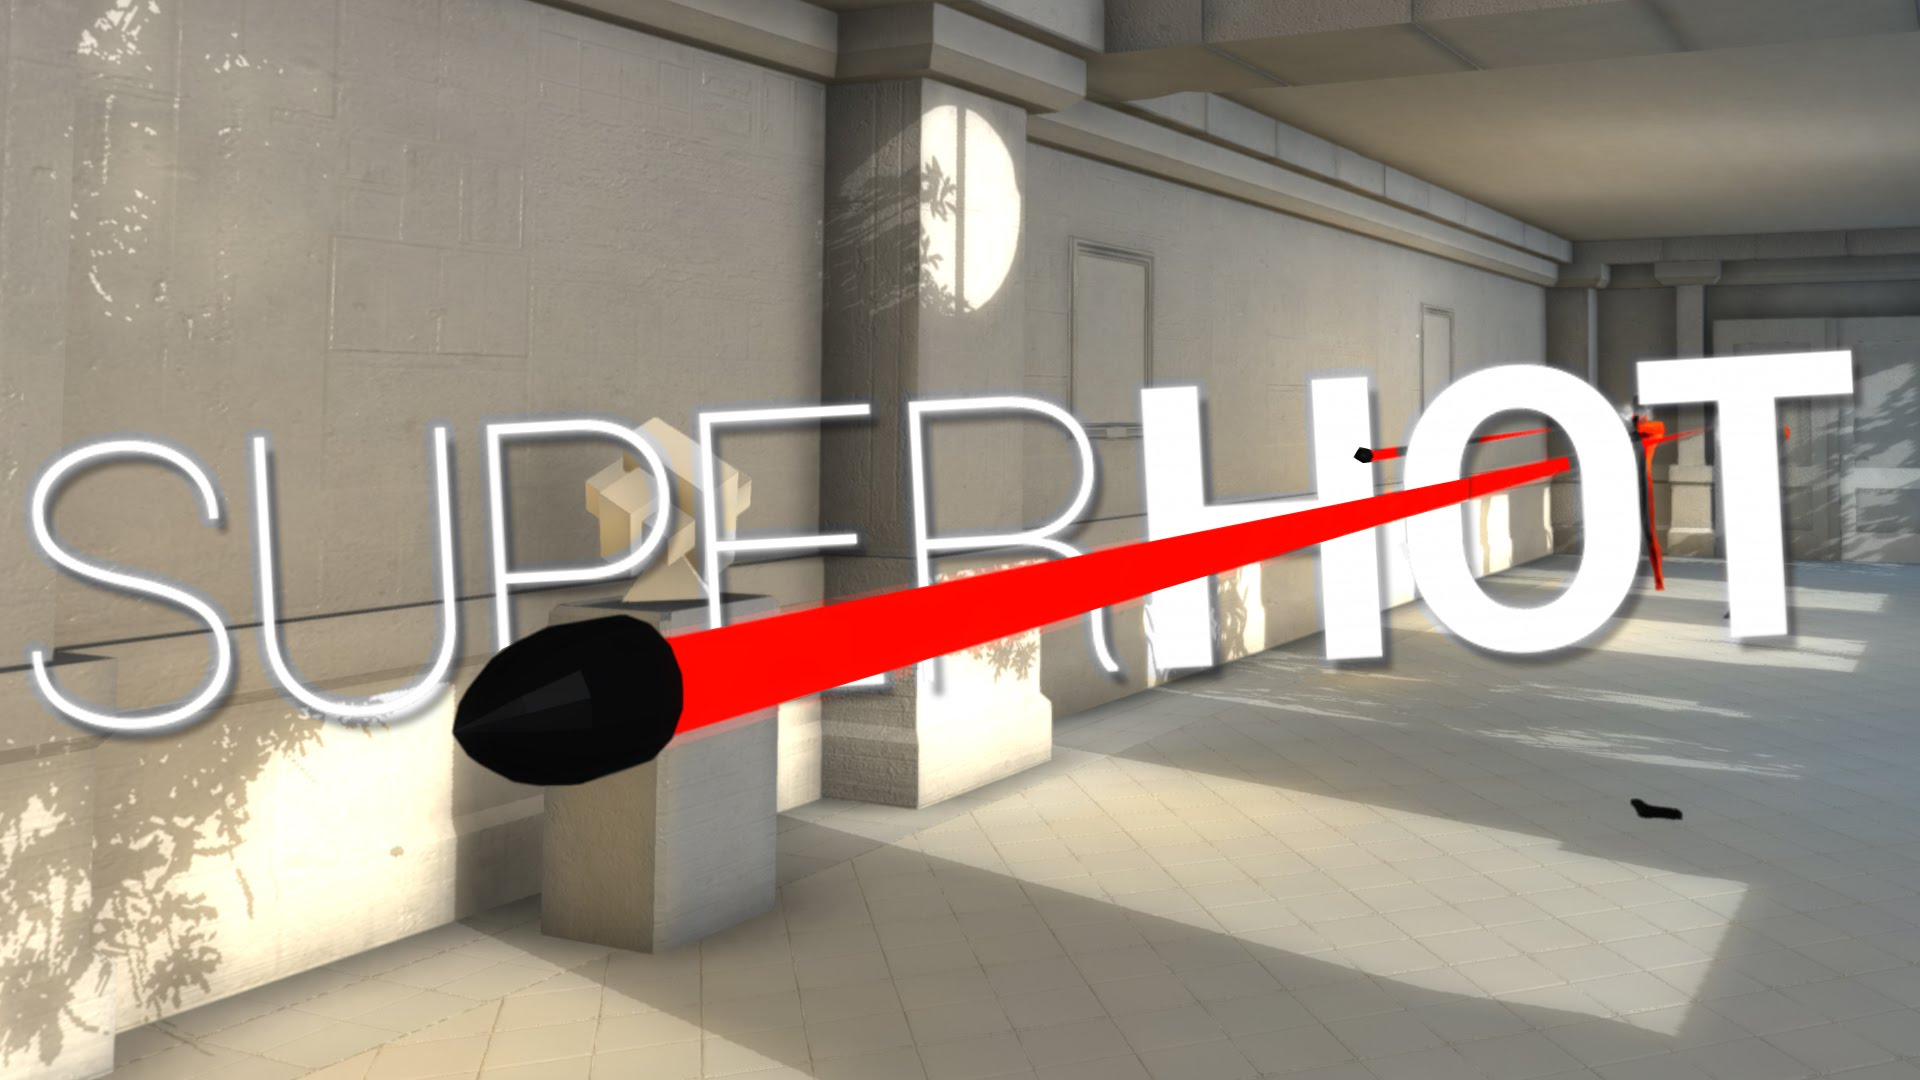 SUPERHOT HD